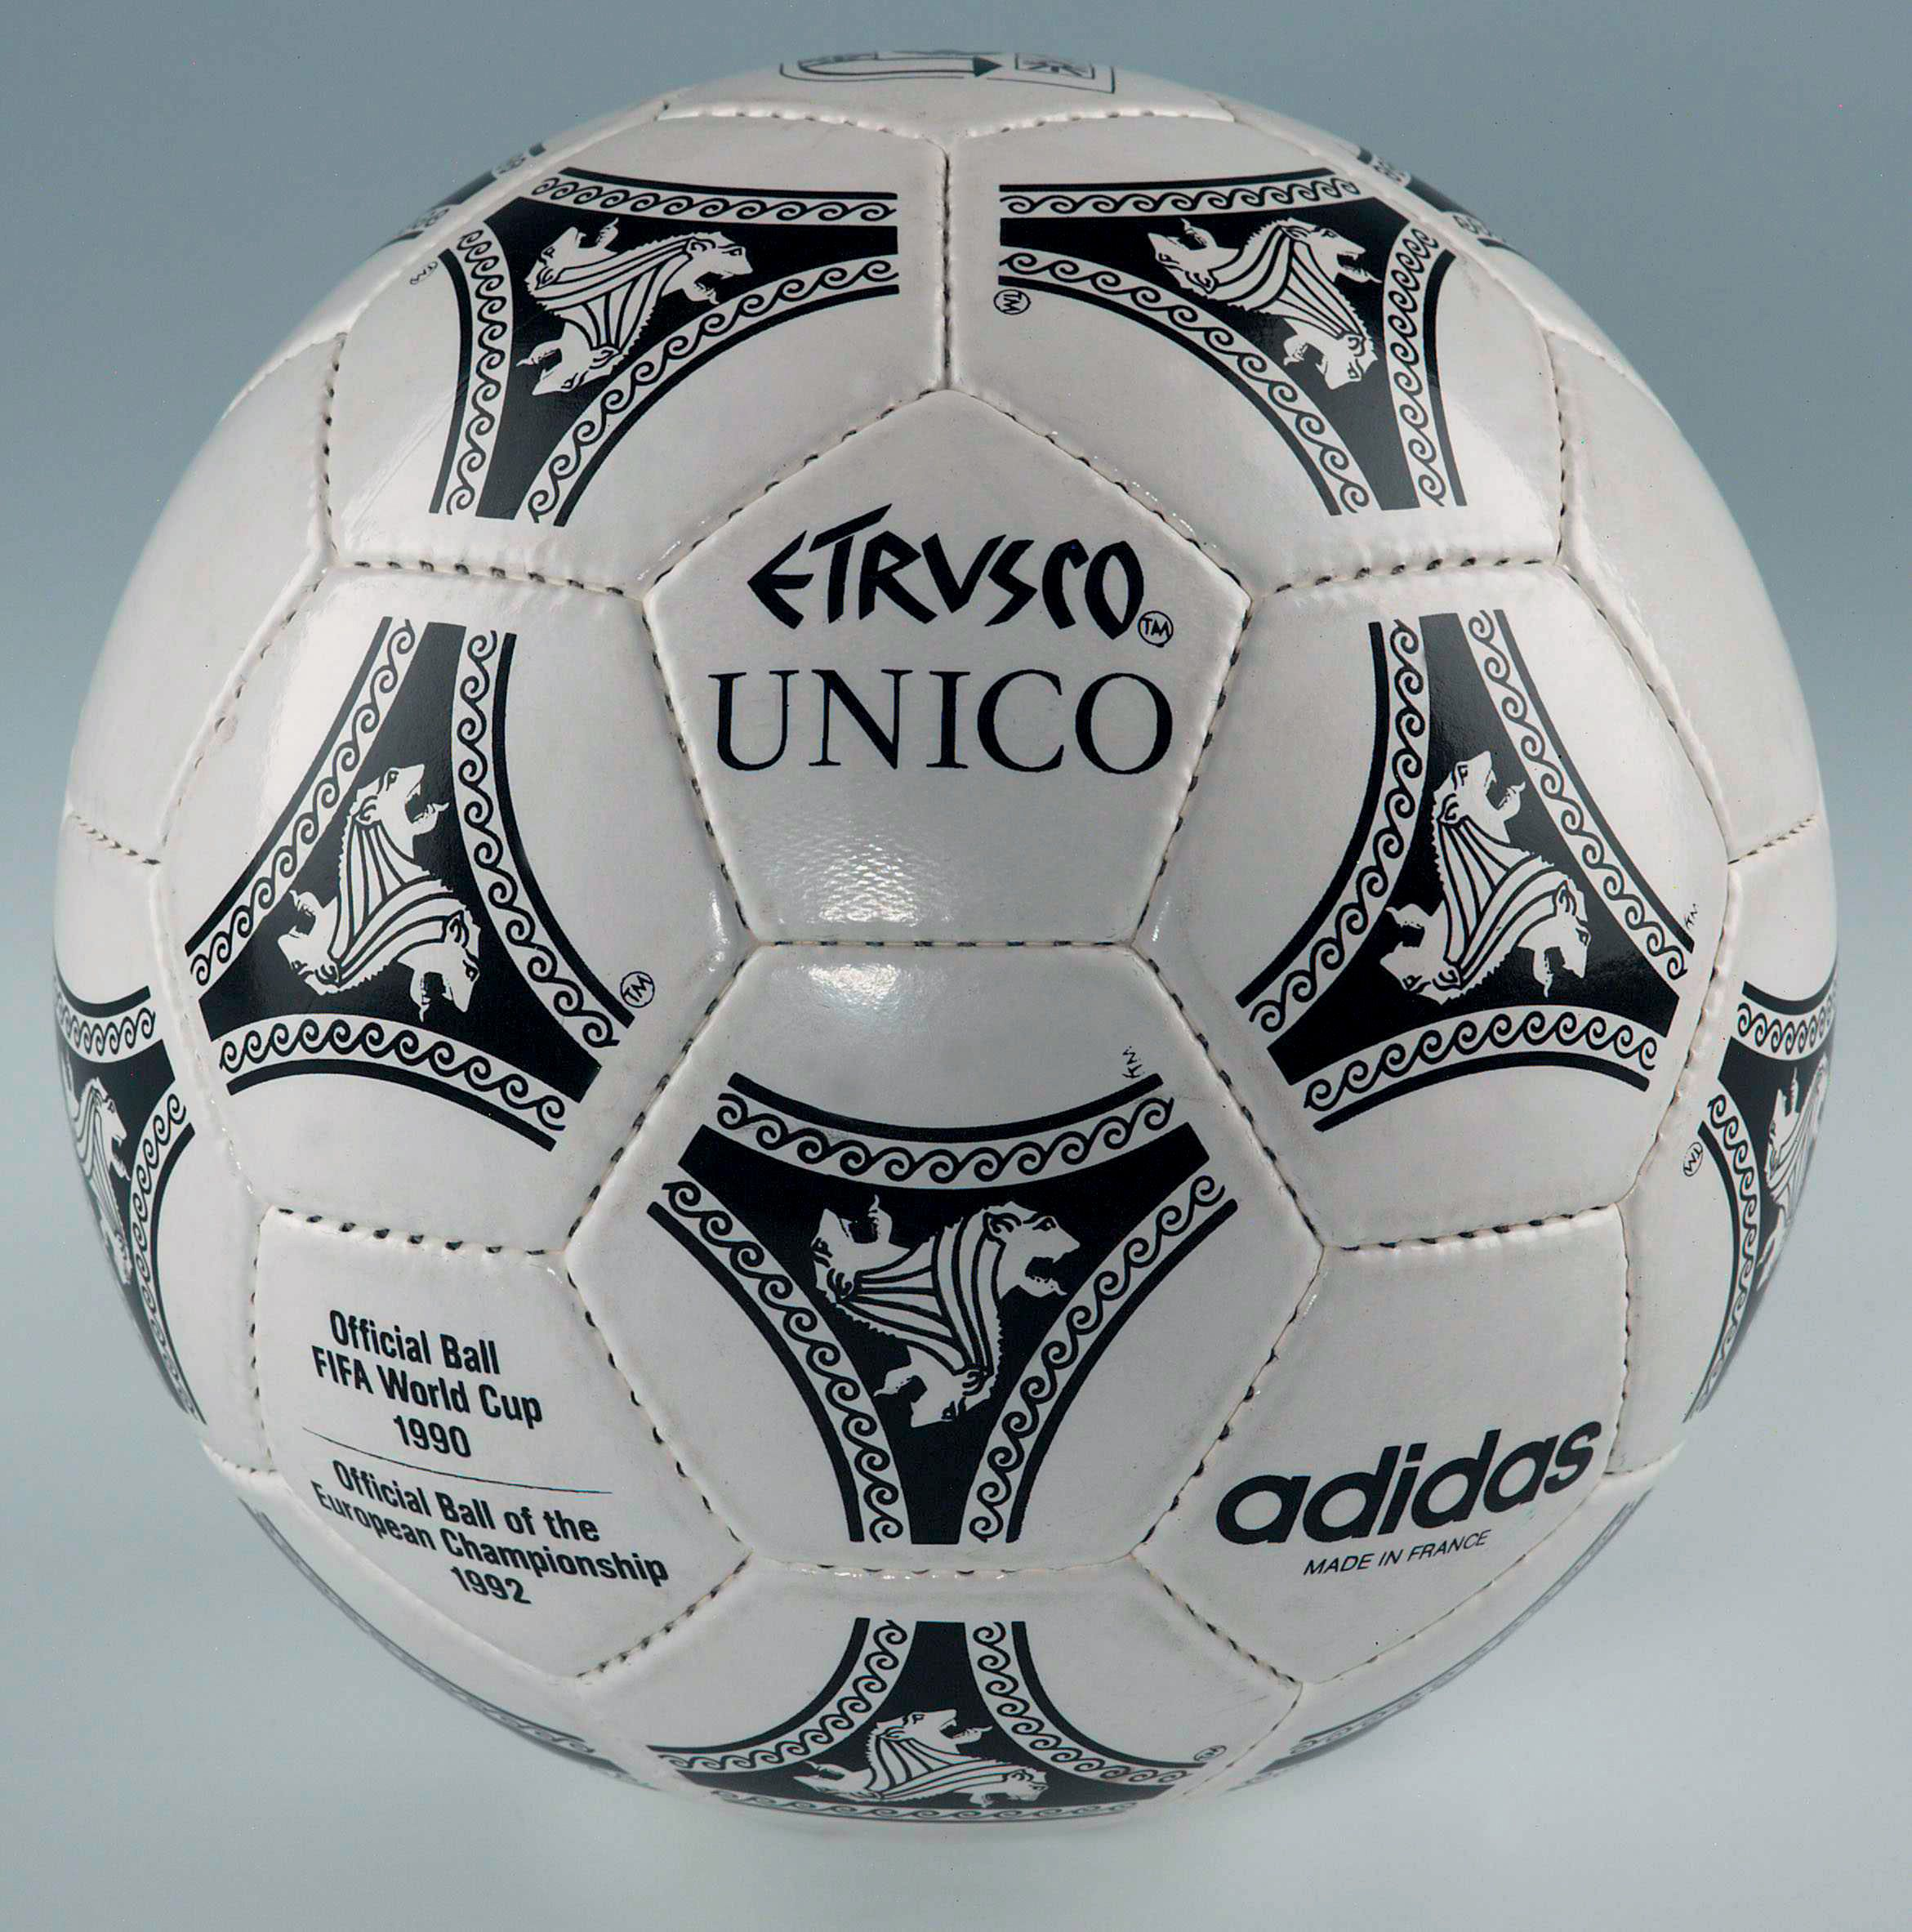 newest c8524 962a7 Etrusco, Official Ball FIFA World Cup Italia 1990.